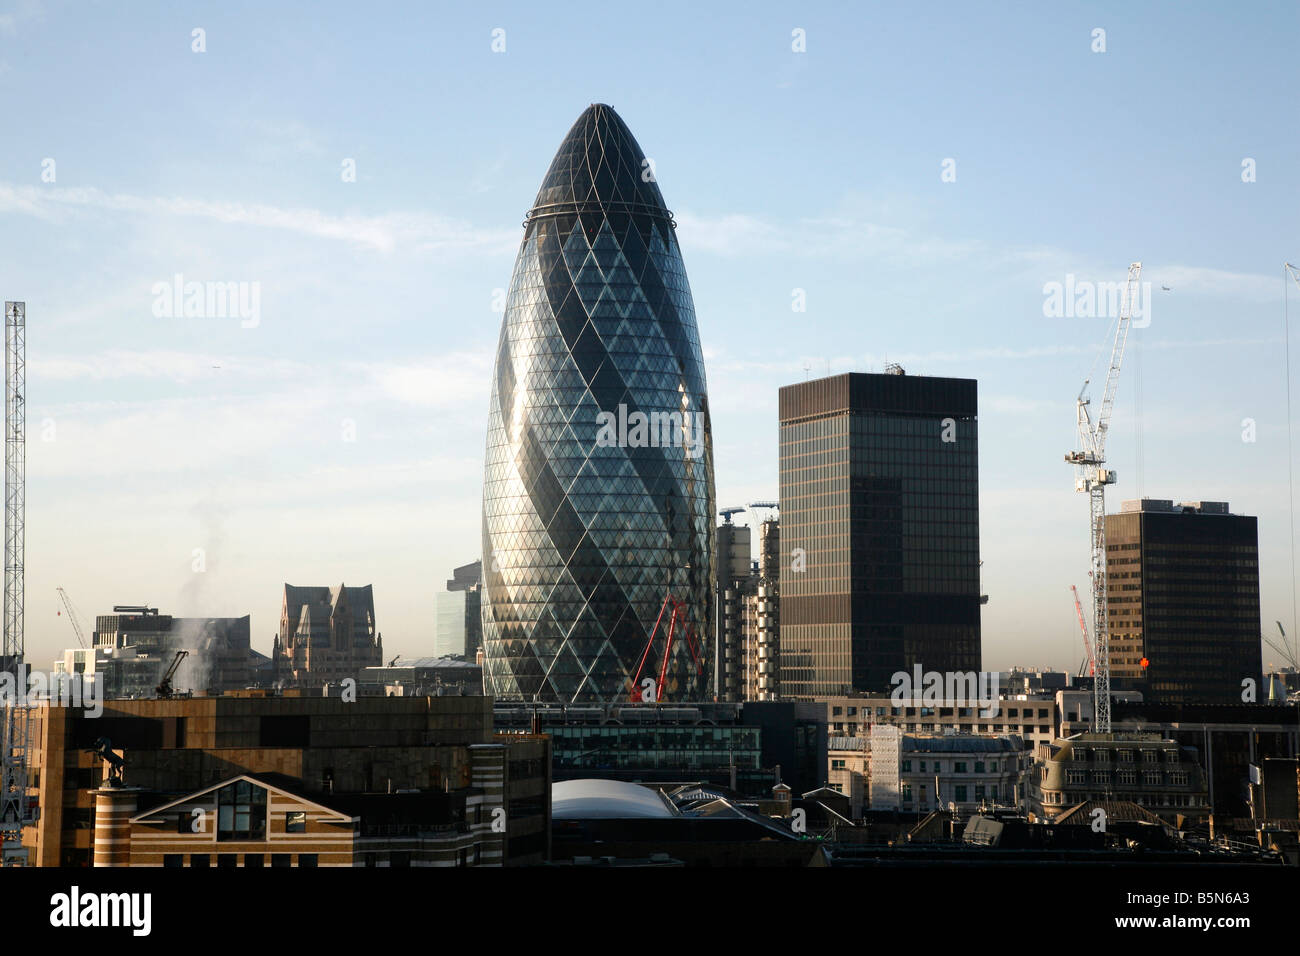 The Gherkin, City of London - Stock Image